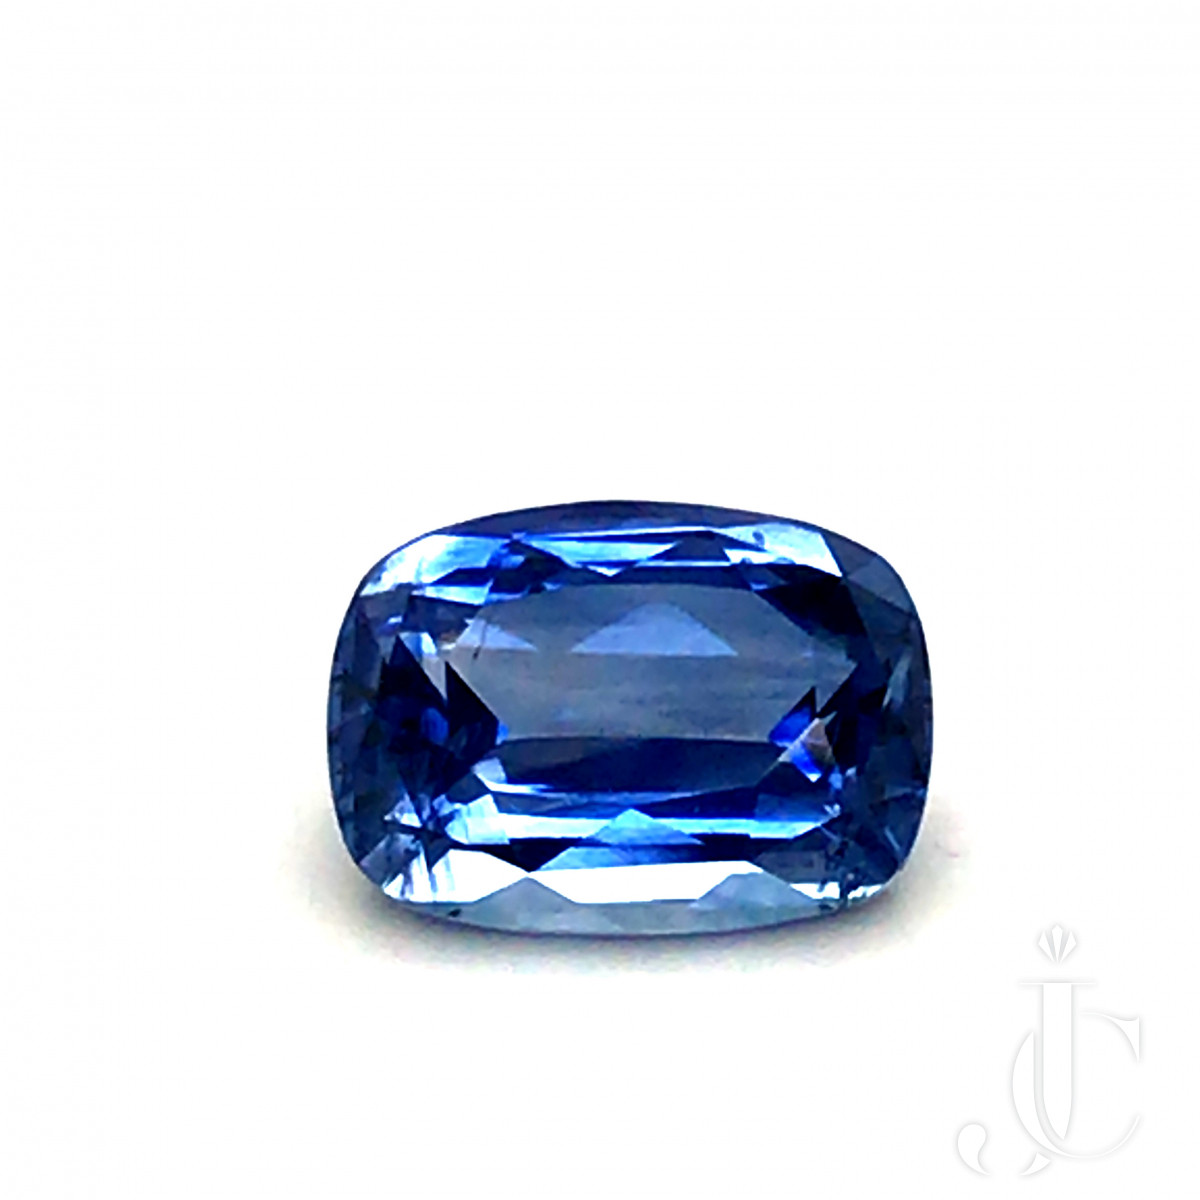 Natural cushion Sapphire 6.62ct cornflower blue with CGJ lab report